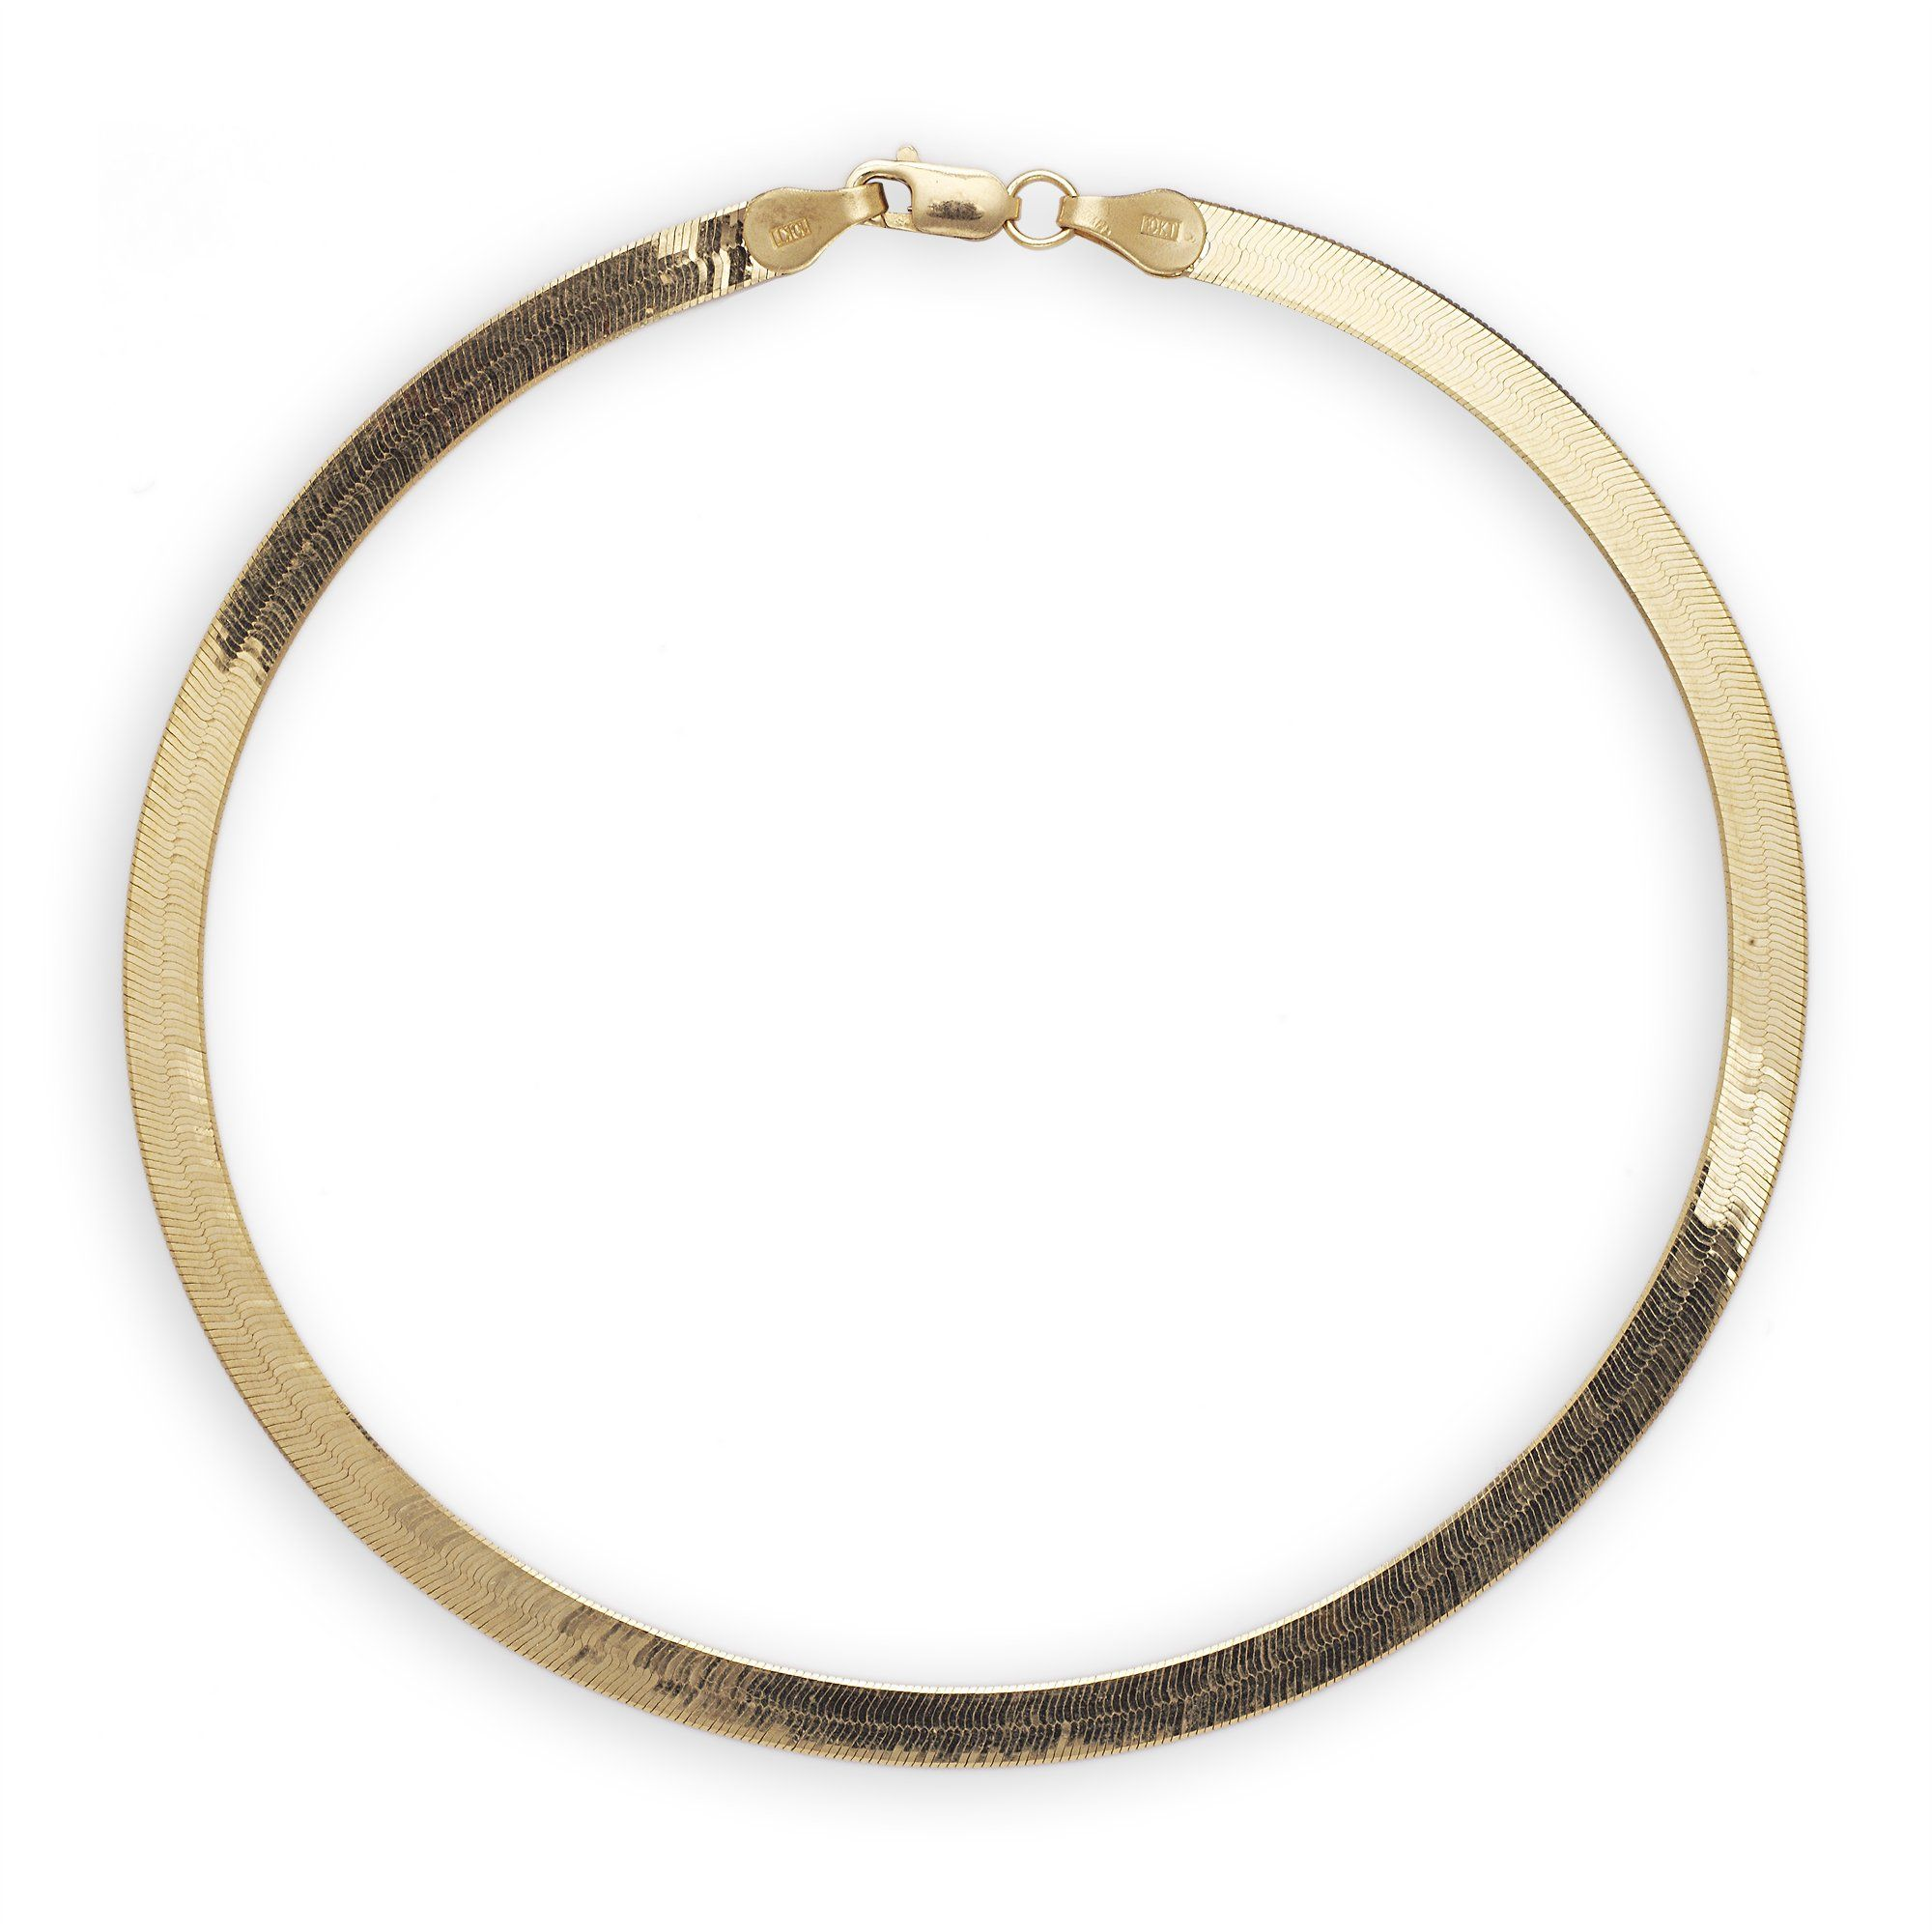 bangle nu brass inch johnsbrana anticlastic gold bark john brana s bangles bracelet products